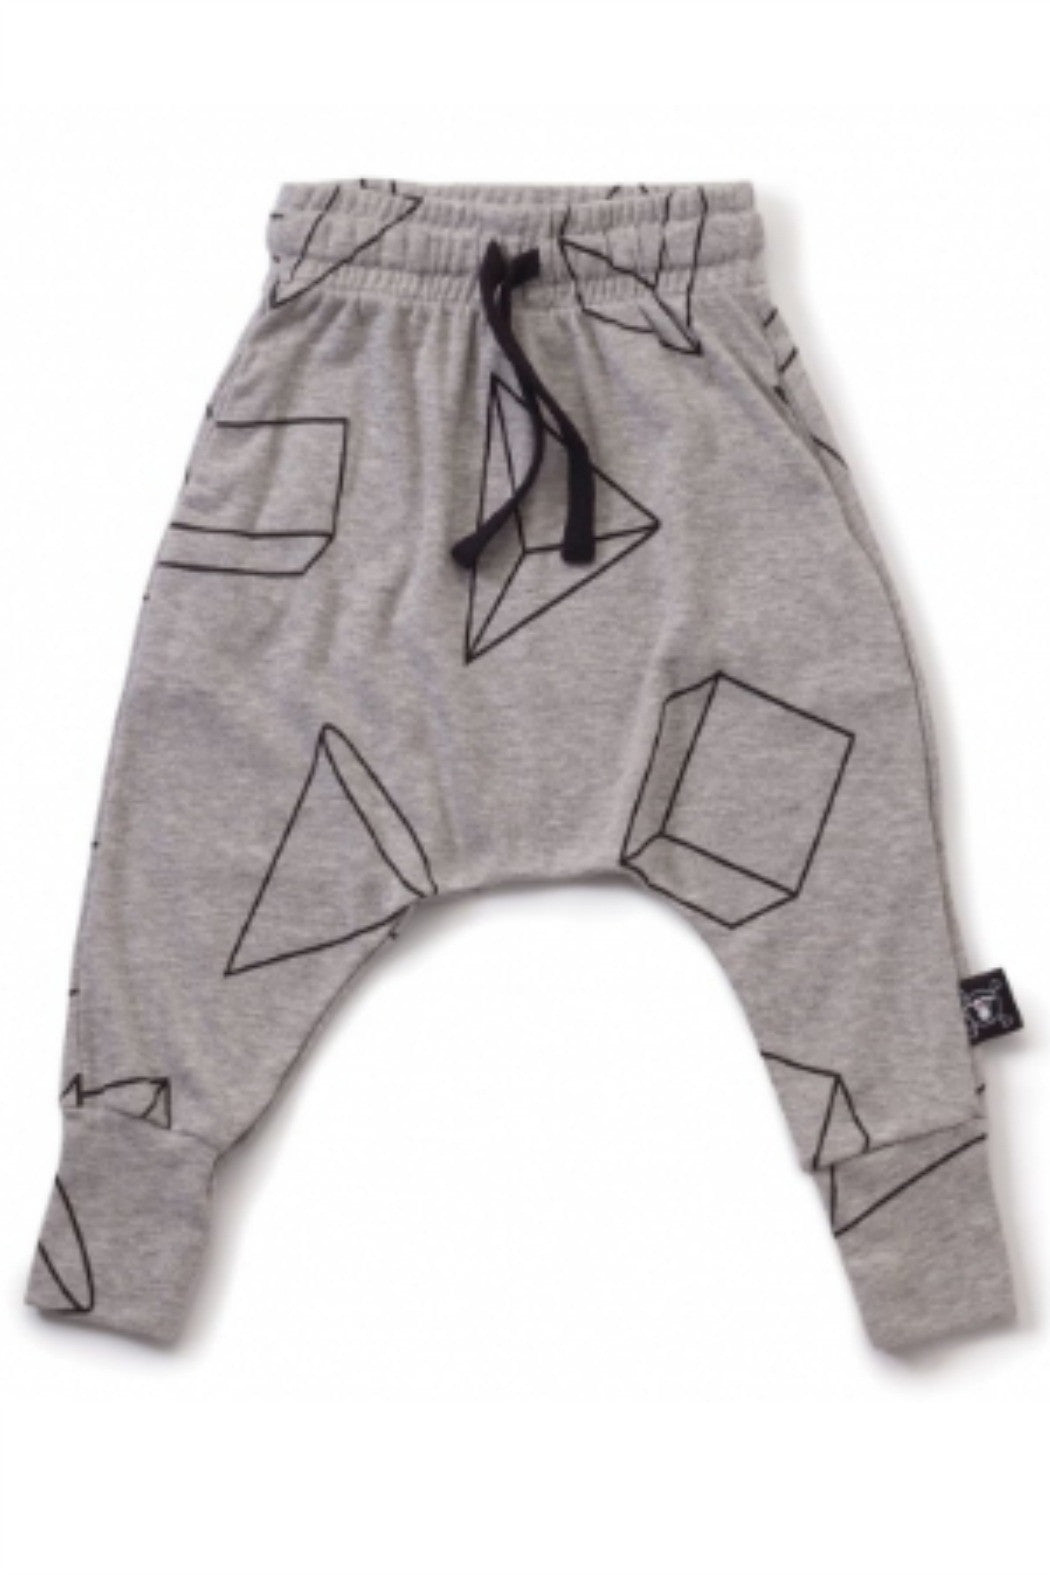 Nununu - Geometric Baggy Pants - R+D Hipster Emporium | Womens & Mens Clothing